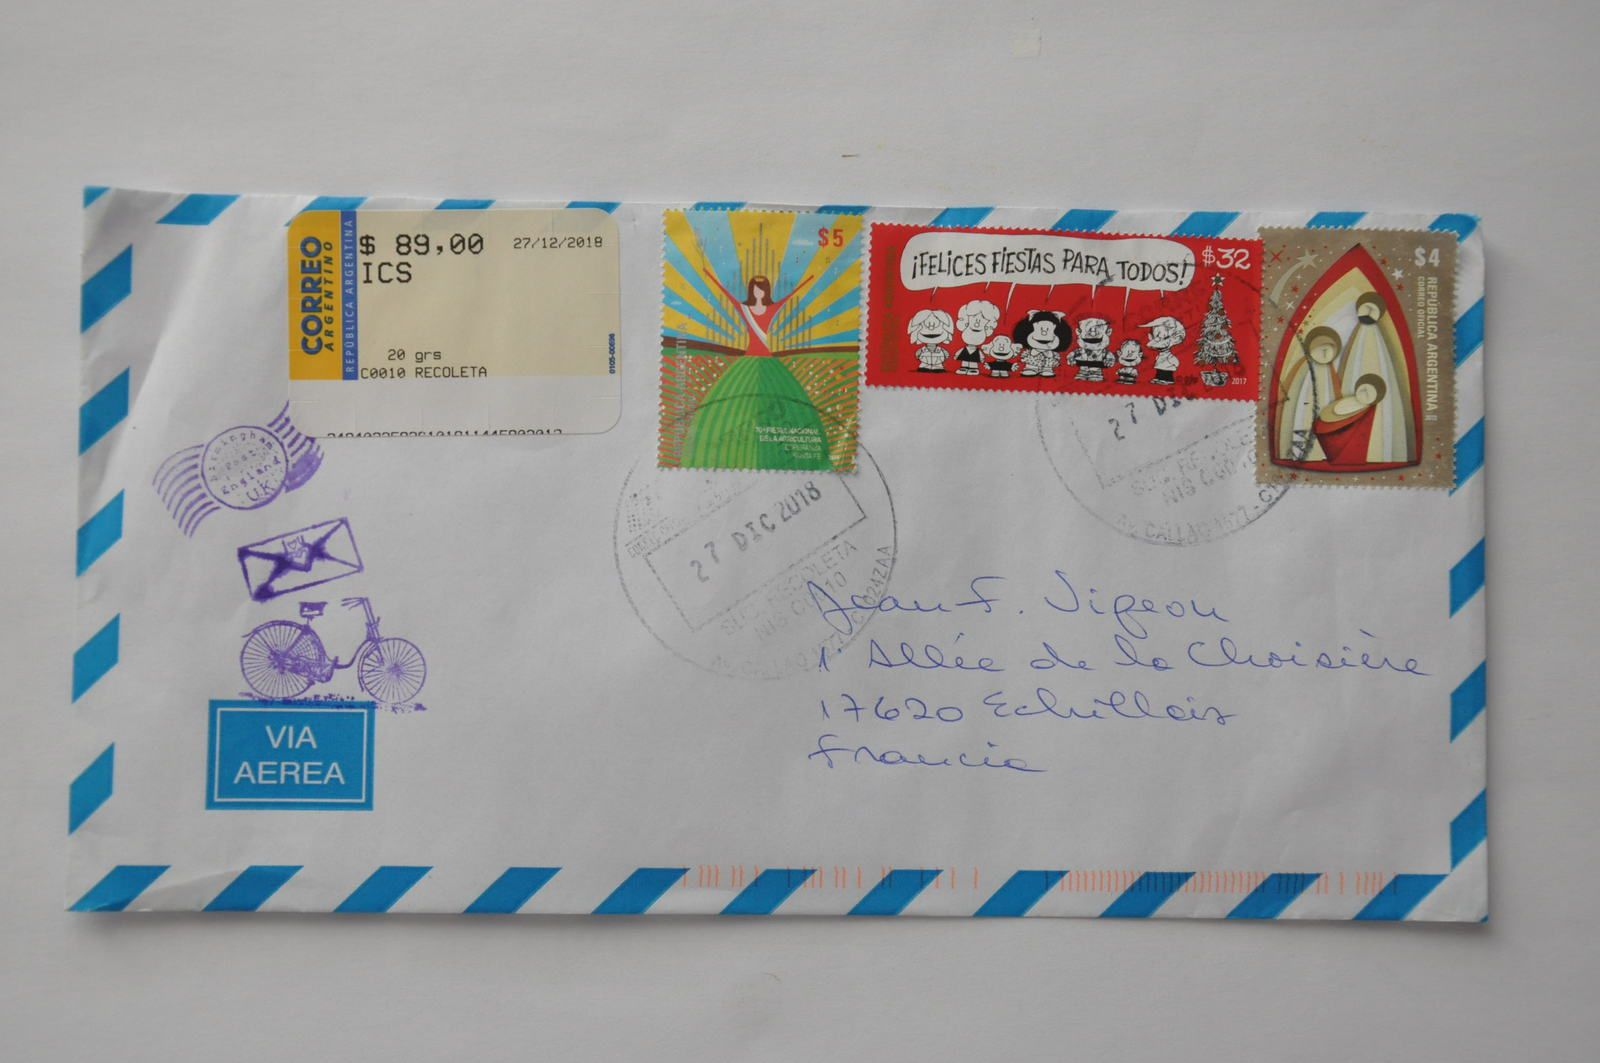 Thank you very much to Maria E.Quiroga from ARGENTINA!